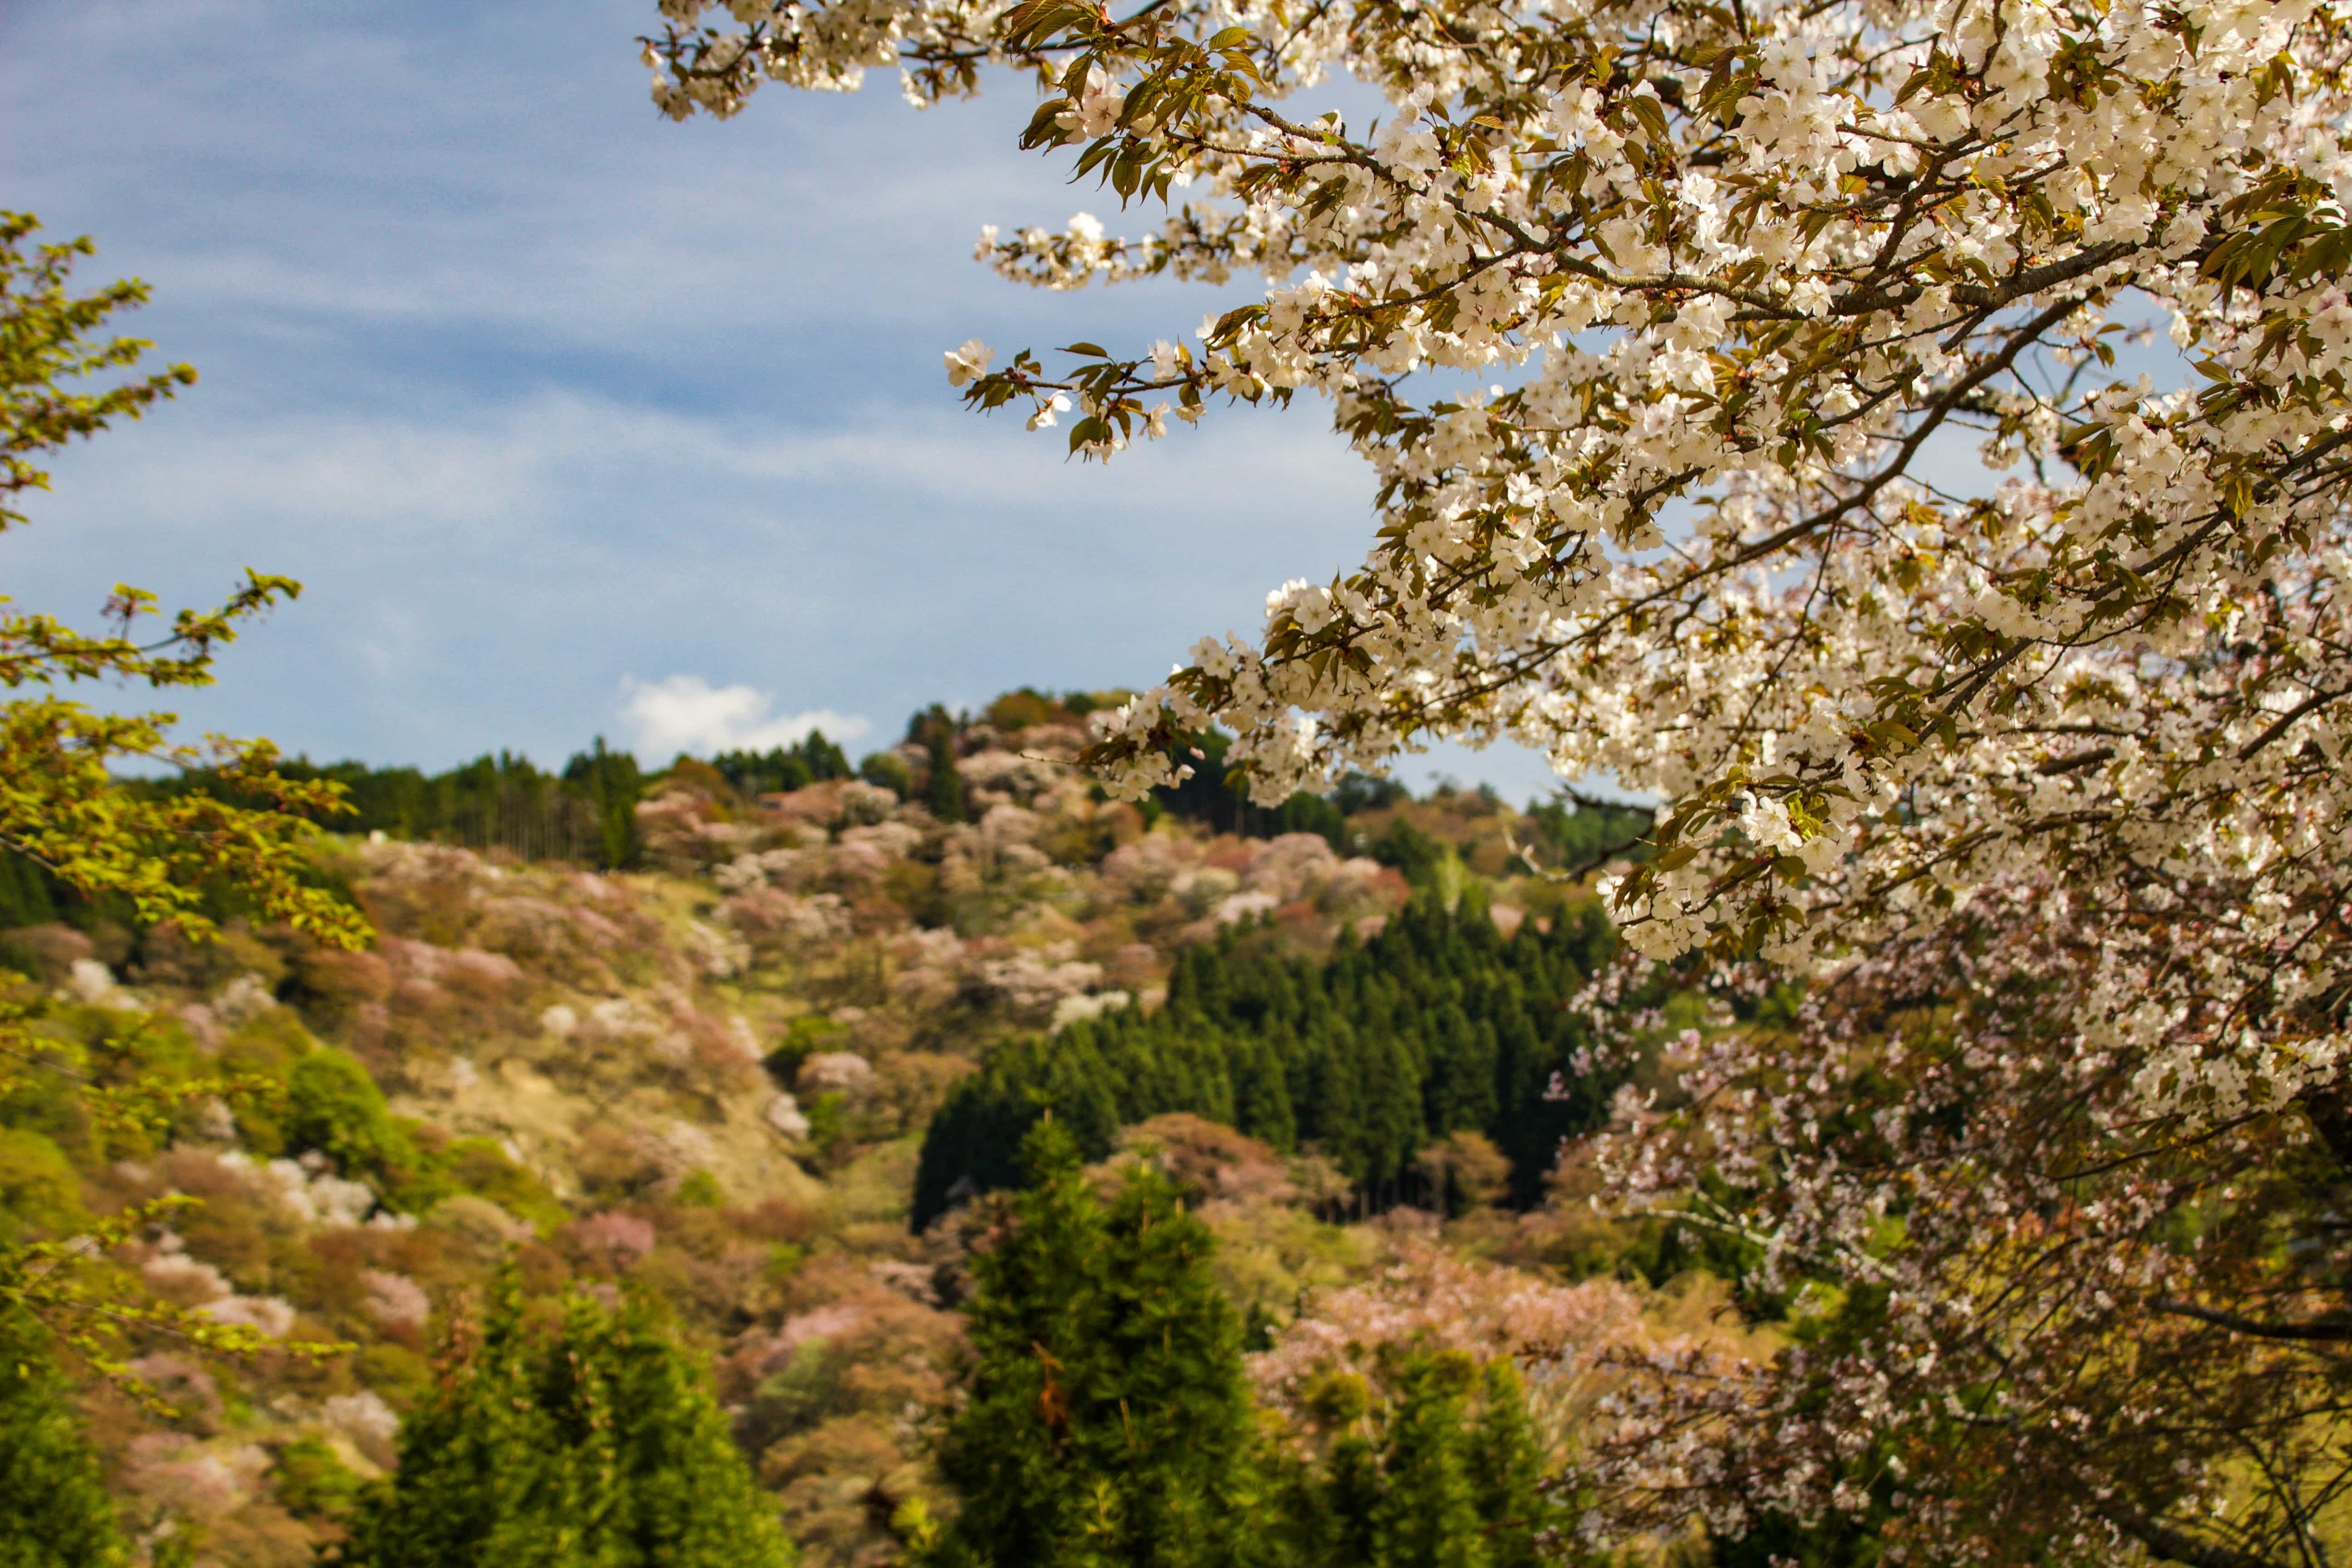 I had thought that Mt. Yoshino would just be a pretty hike up a mountain to see cherry blossoms, but it ended up being a very cultural experience as well! Read more at www.thefivefoottraveler.com